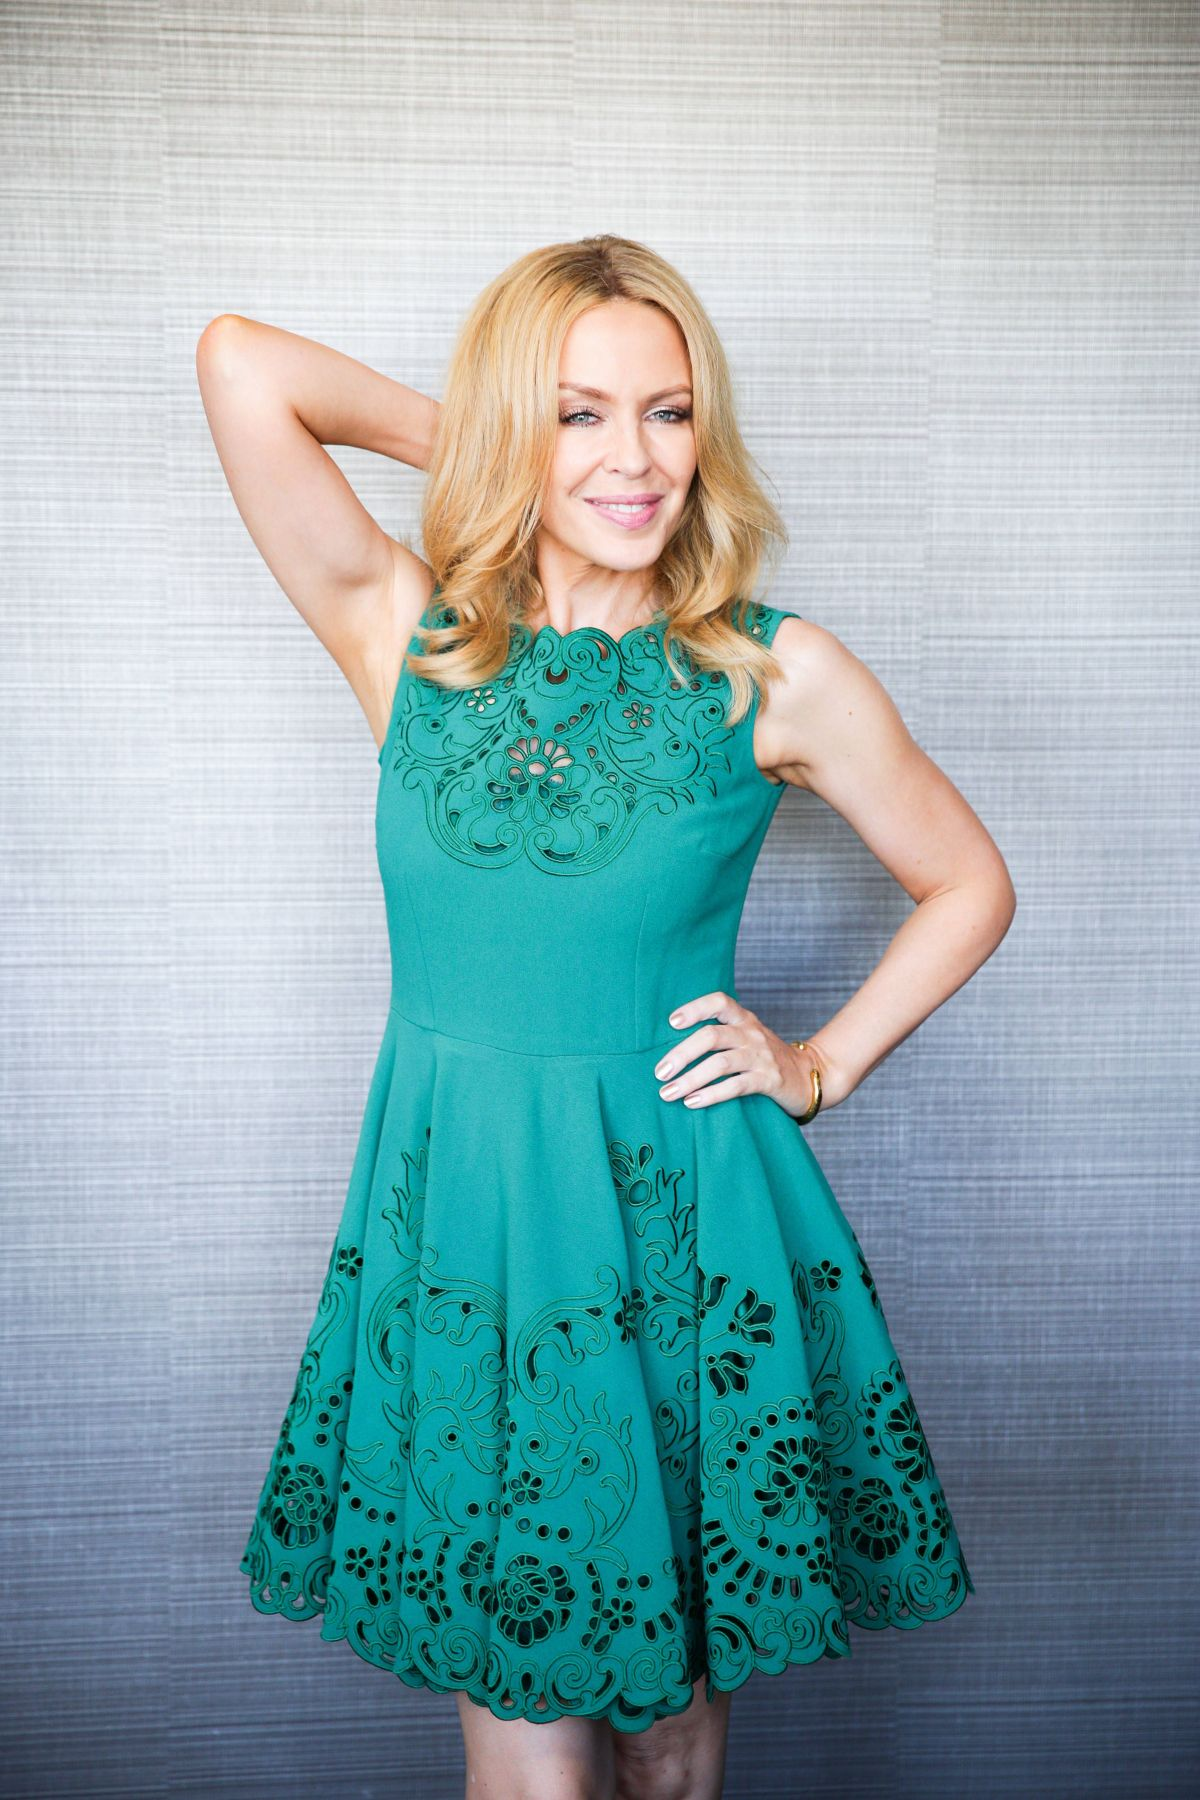 kylie minogue - photo #14